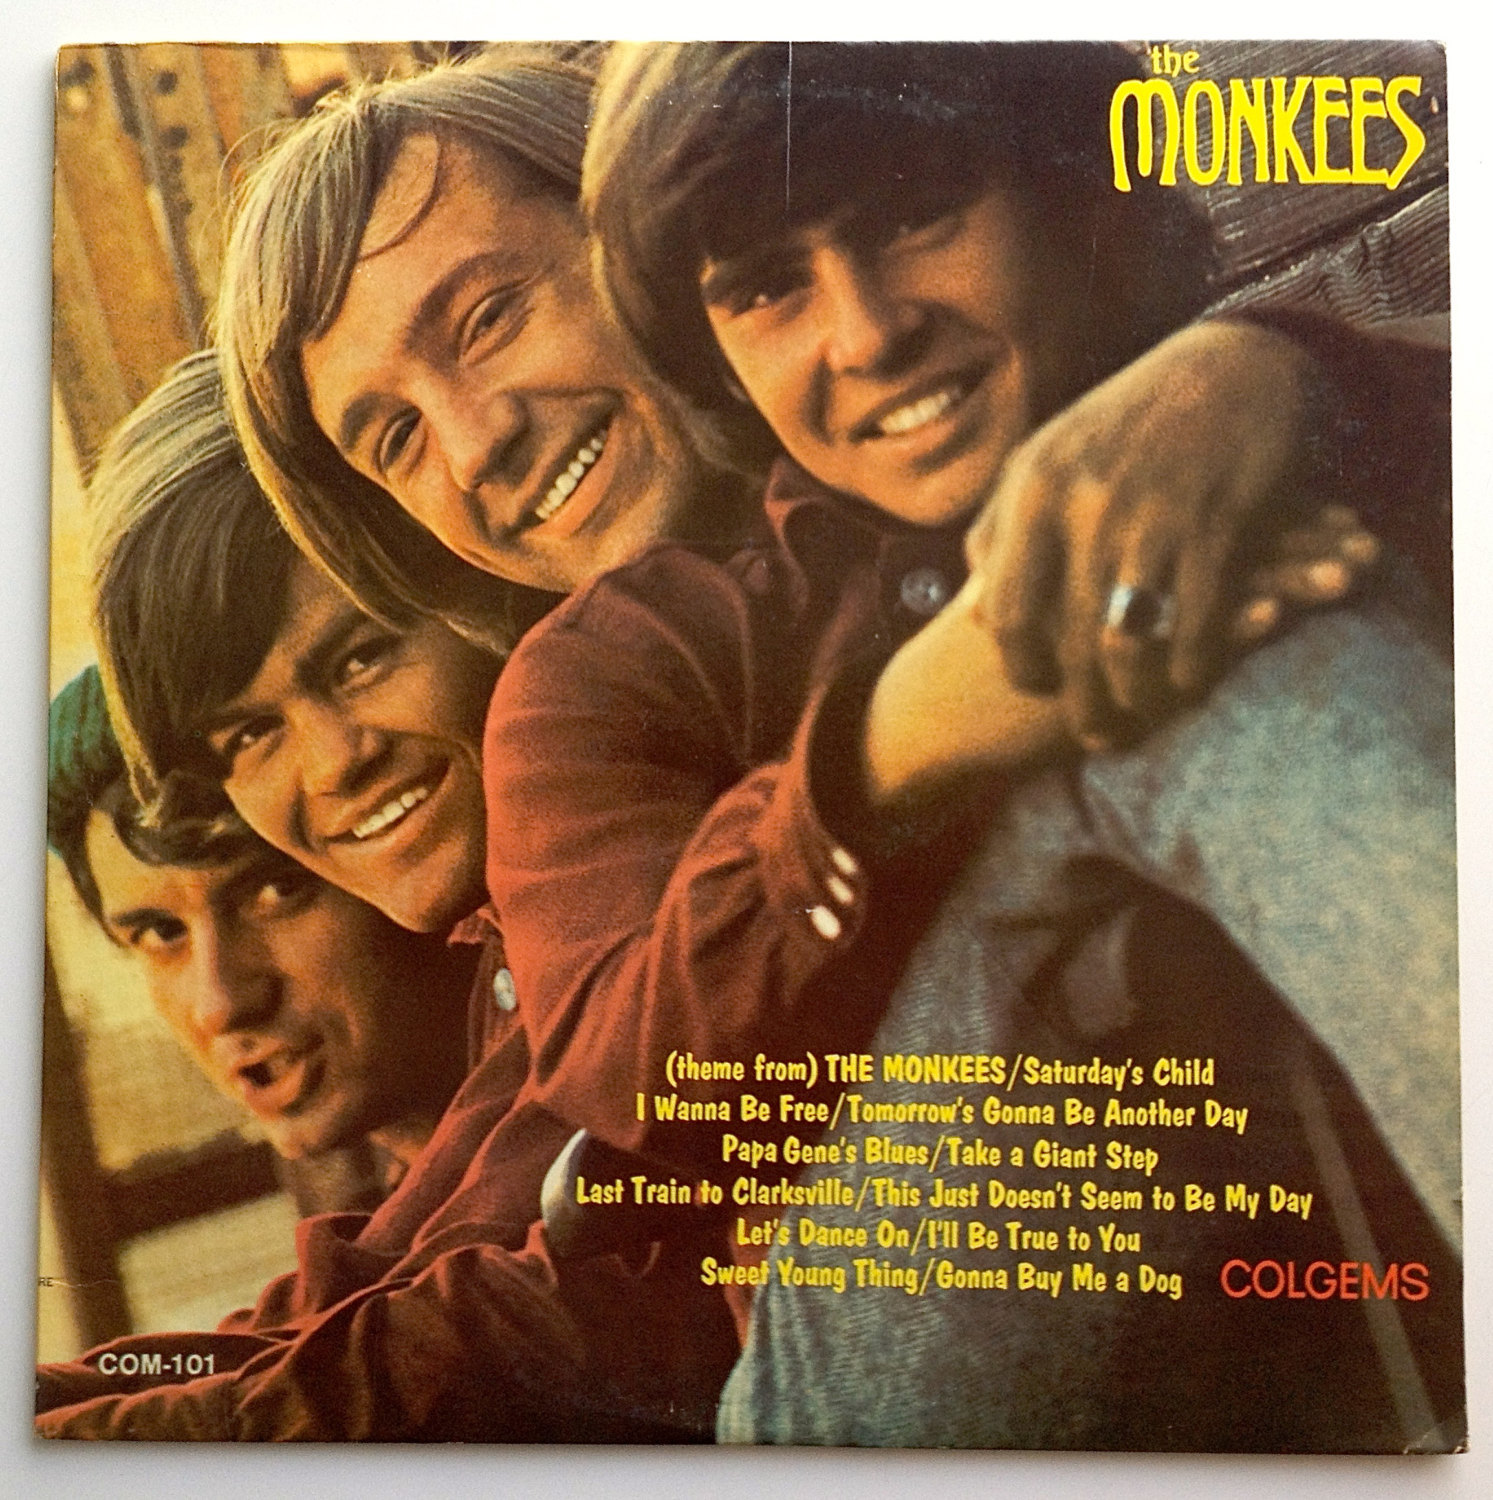 Primary image for The Monkees - Self Titled LP Vinyl Record Album, Colgems - COM-101, Rock, Pop Ro